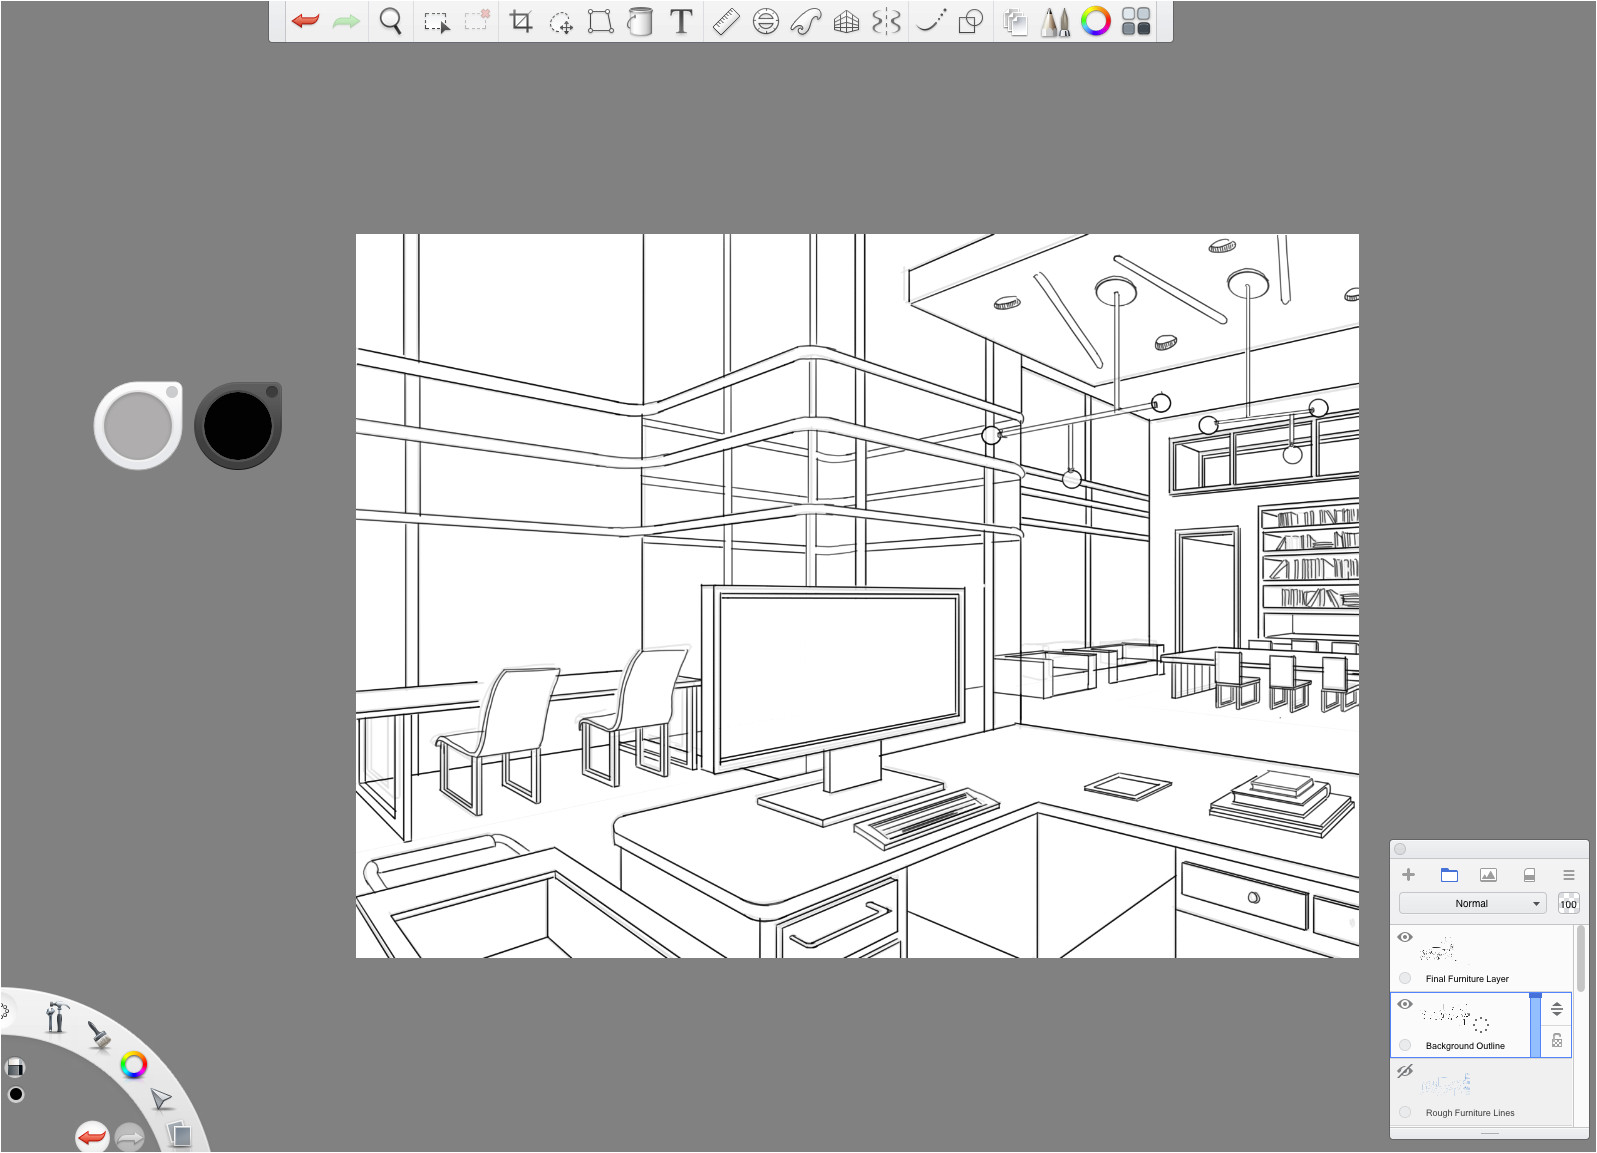 perspective guides using two point perspective for drawing interiors